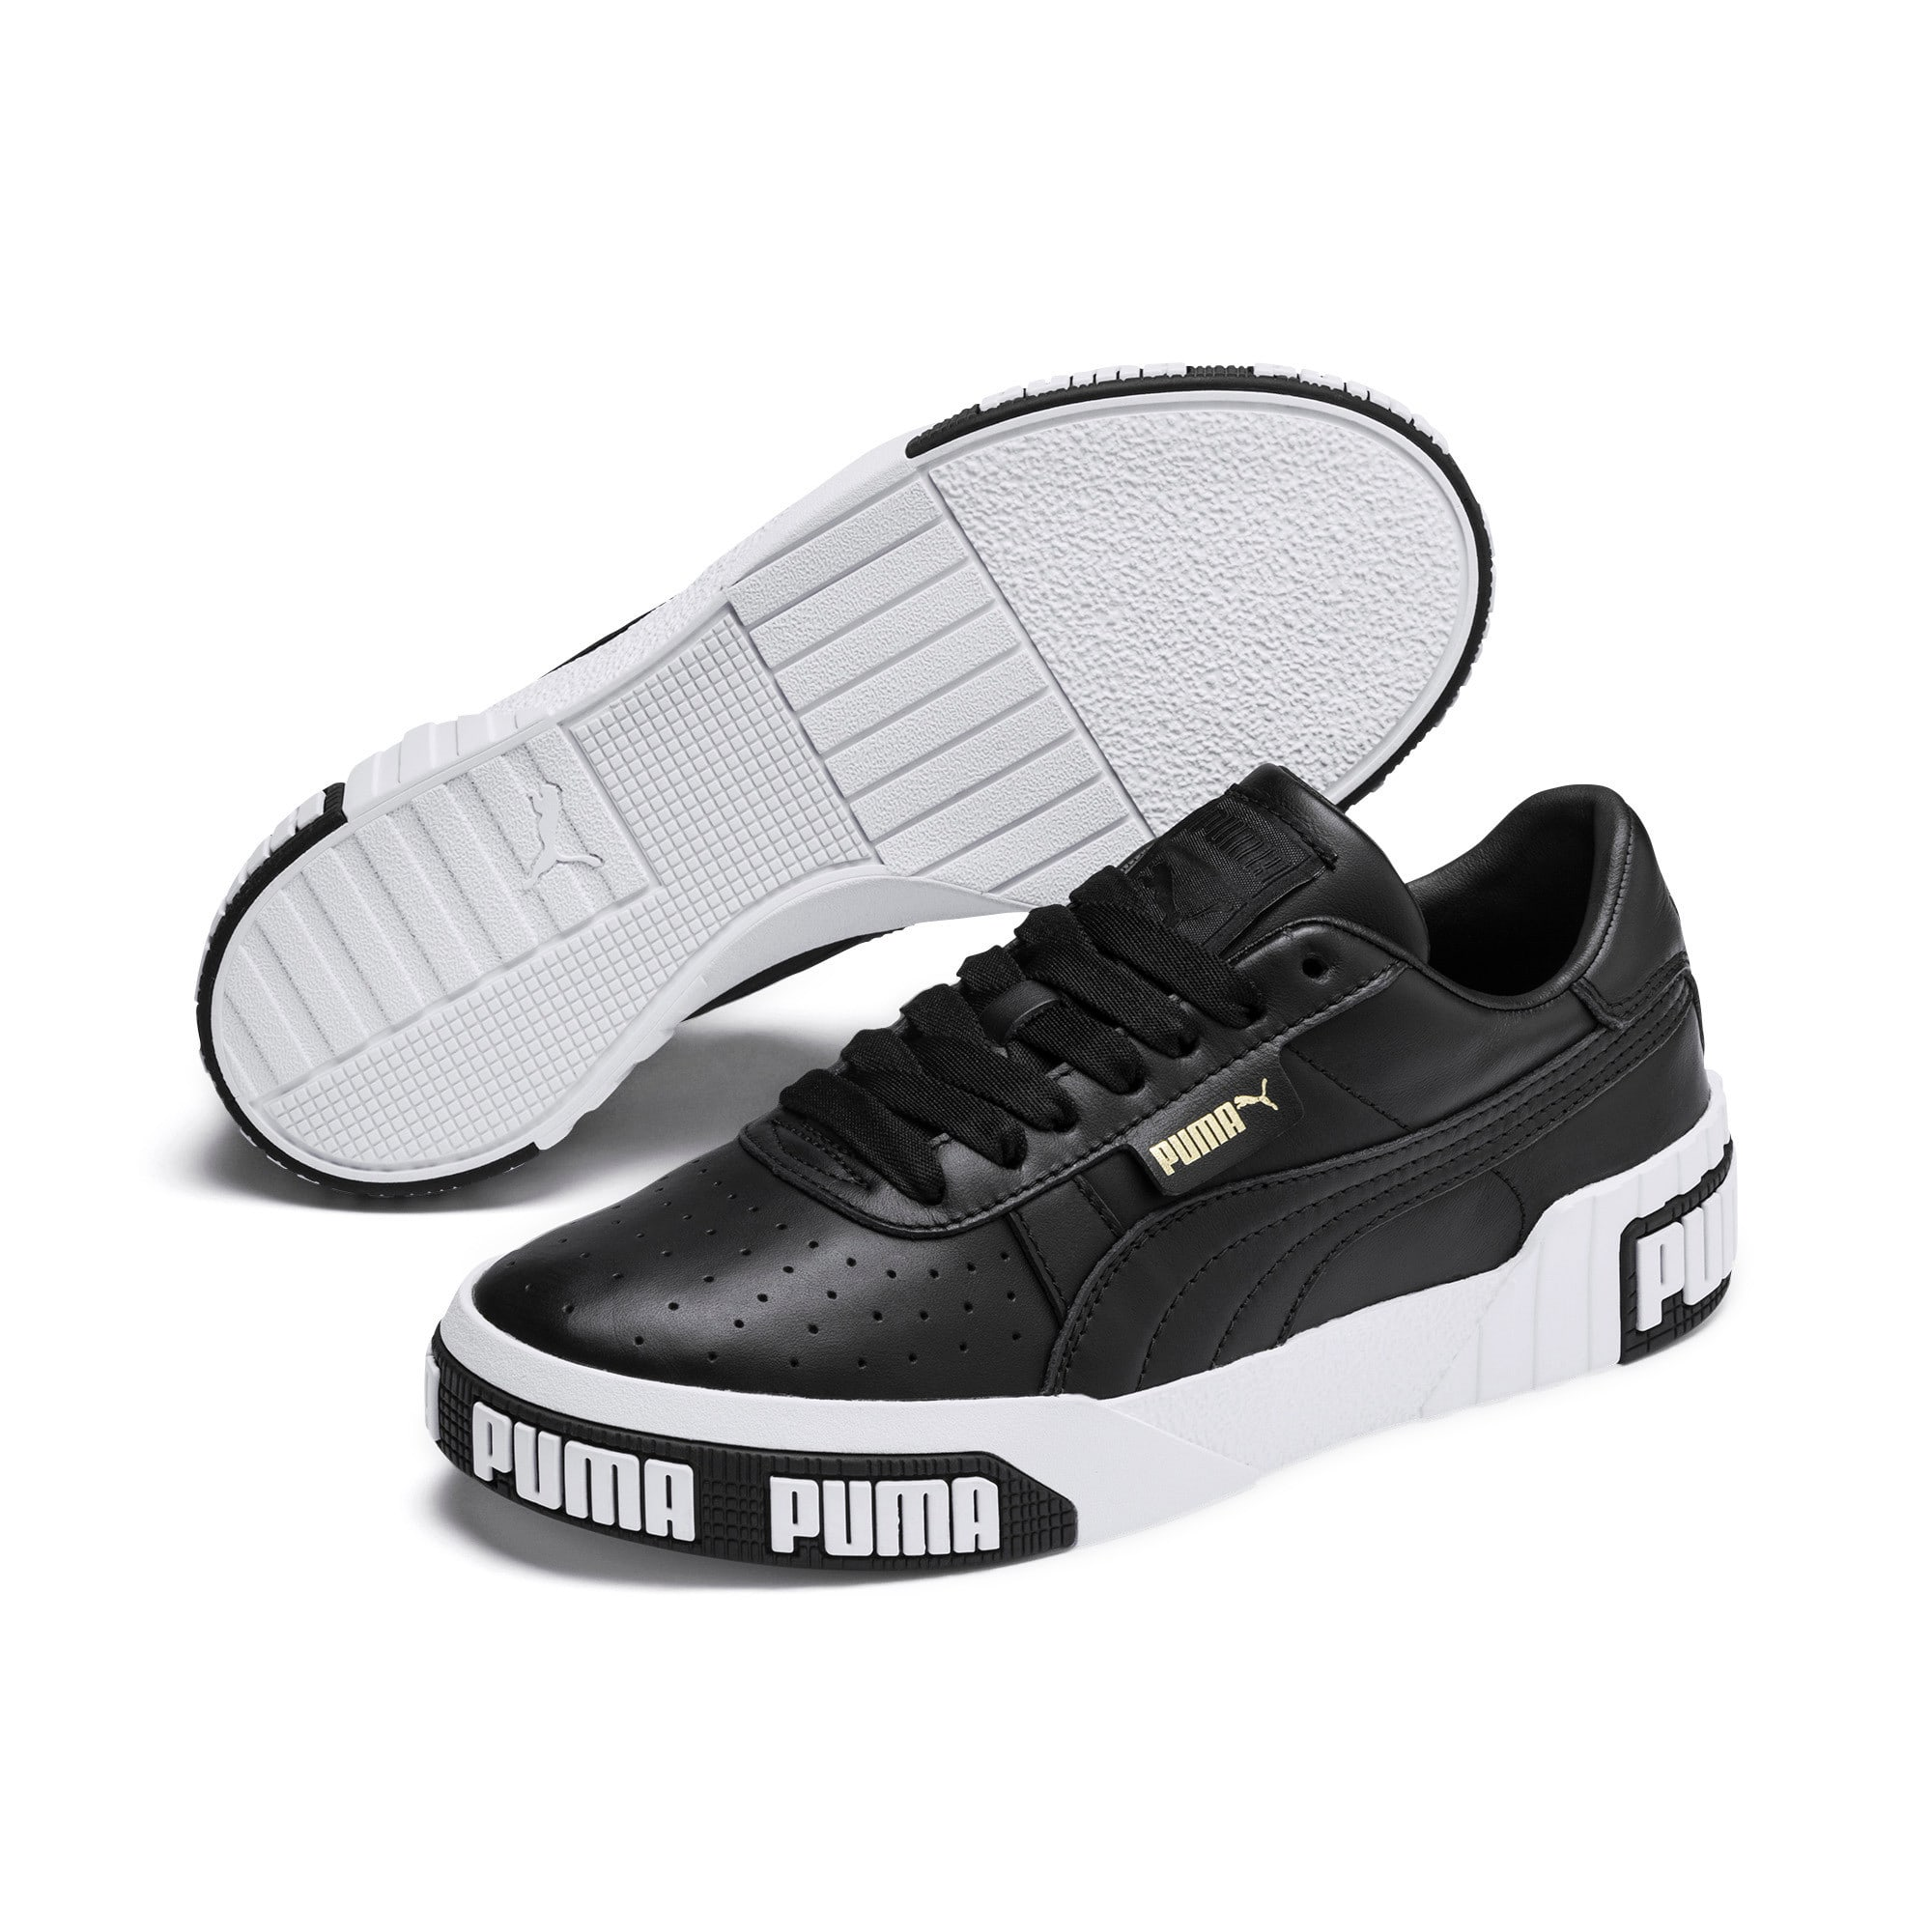 Thumbnail 3 of Damskie buty sportowe Cali Bold, Puma Black-Metallic Gold, medium